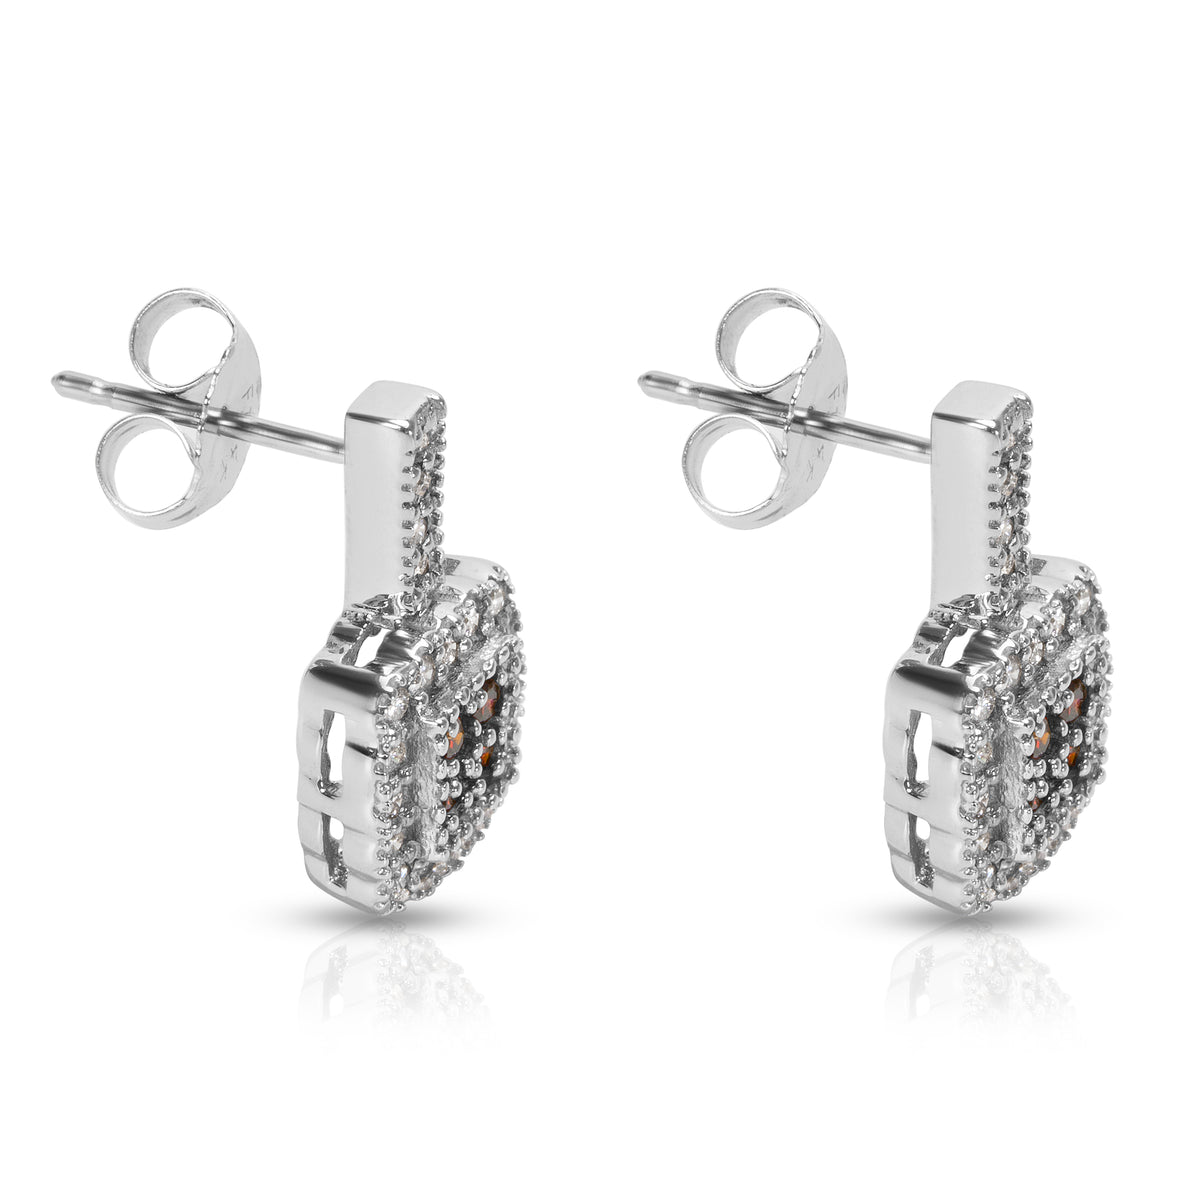 BRAND NEW Fashion Earrings in 14K White Gold with Diamonds (0.50 CTW)